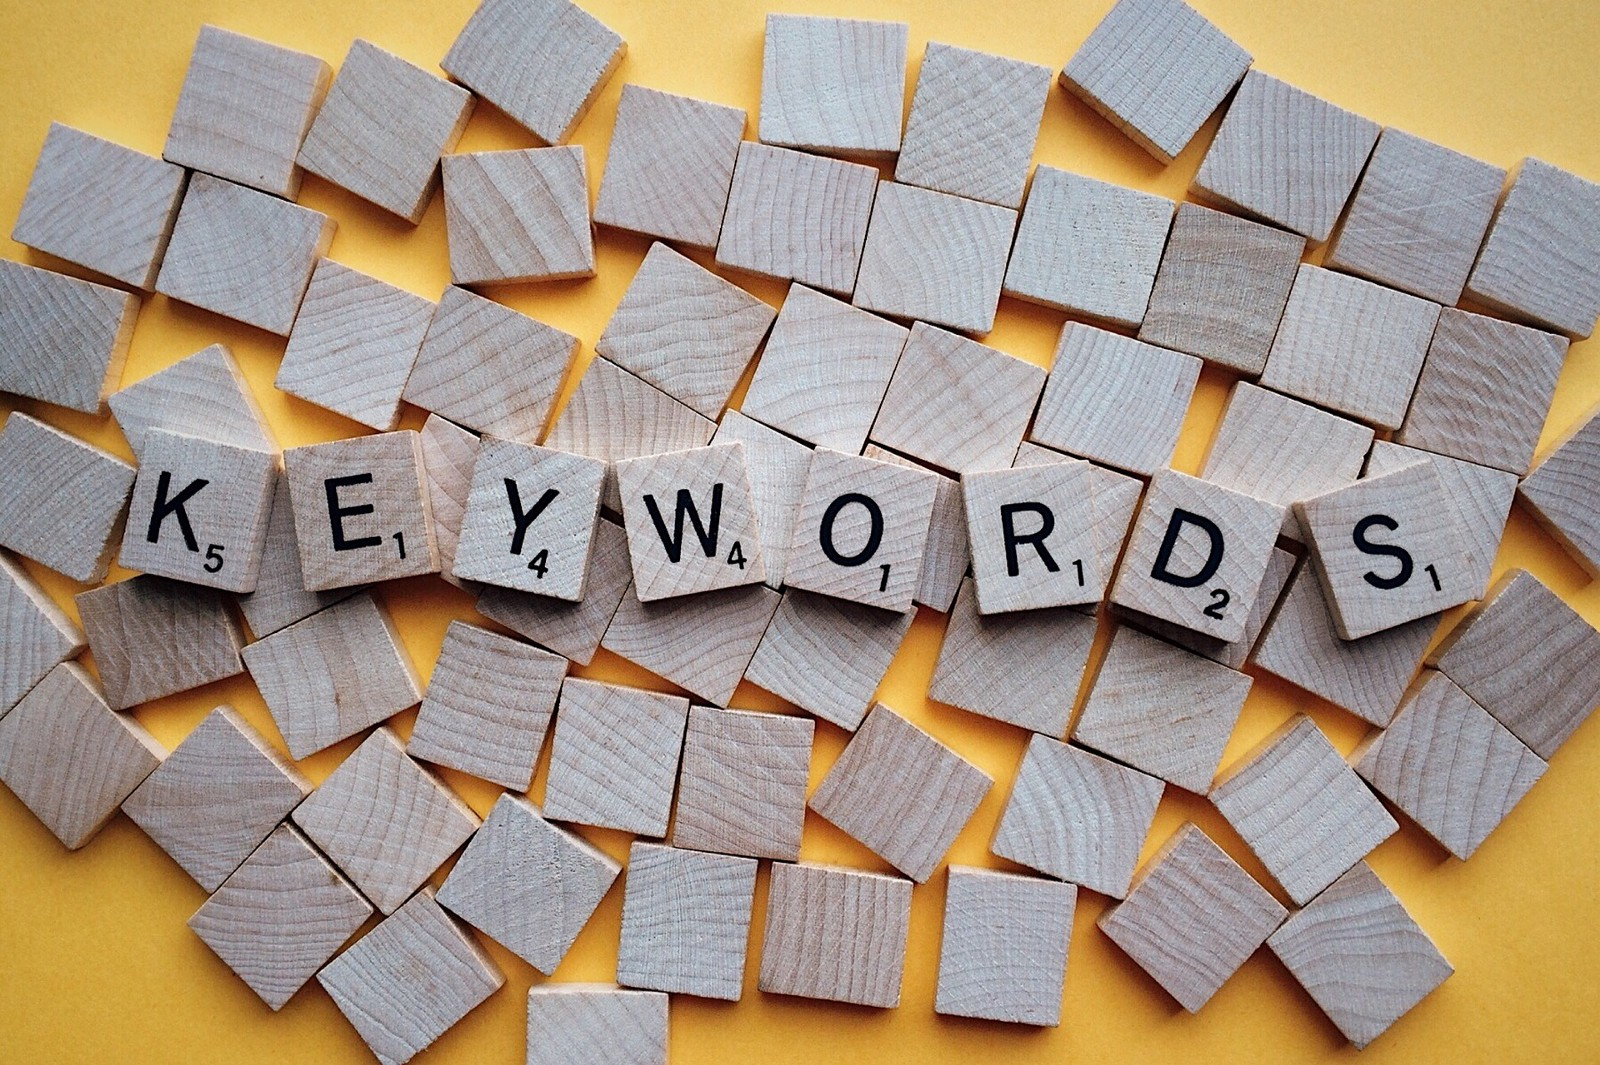 /how-to-conduct-effective-keyword-research-57163ab4178c feature image